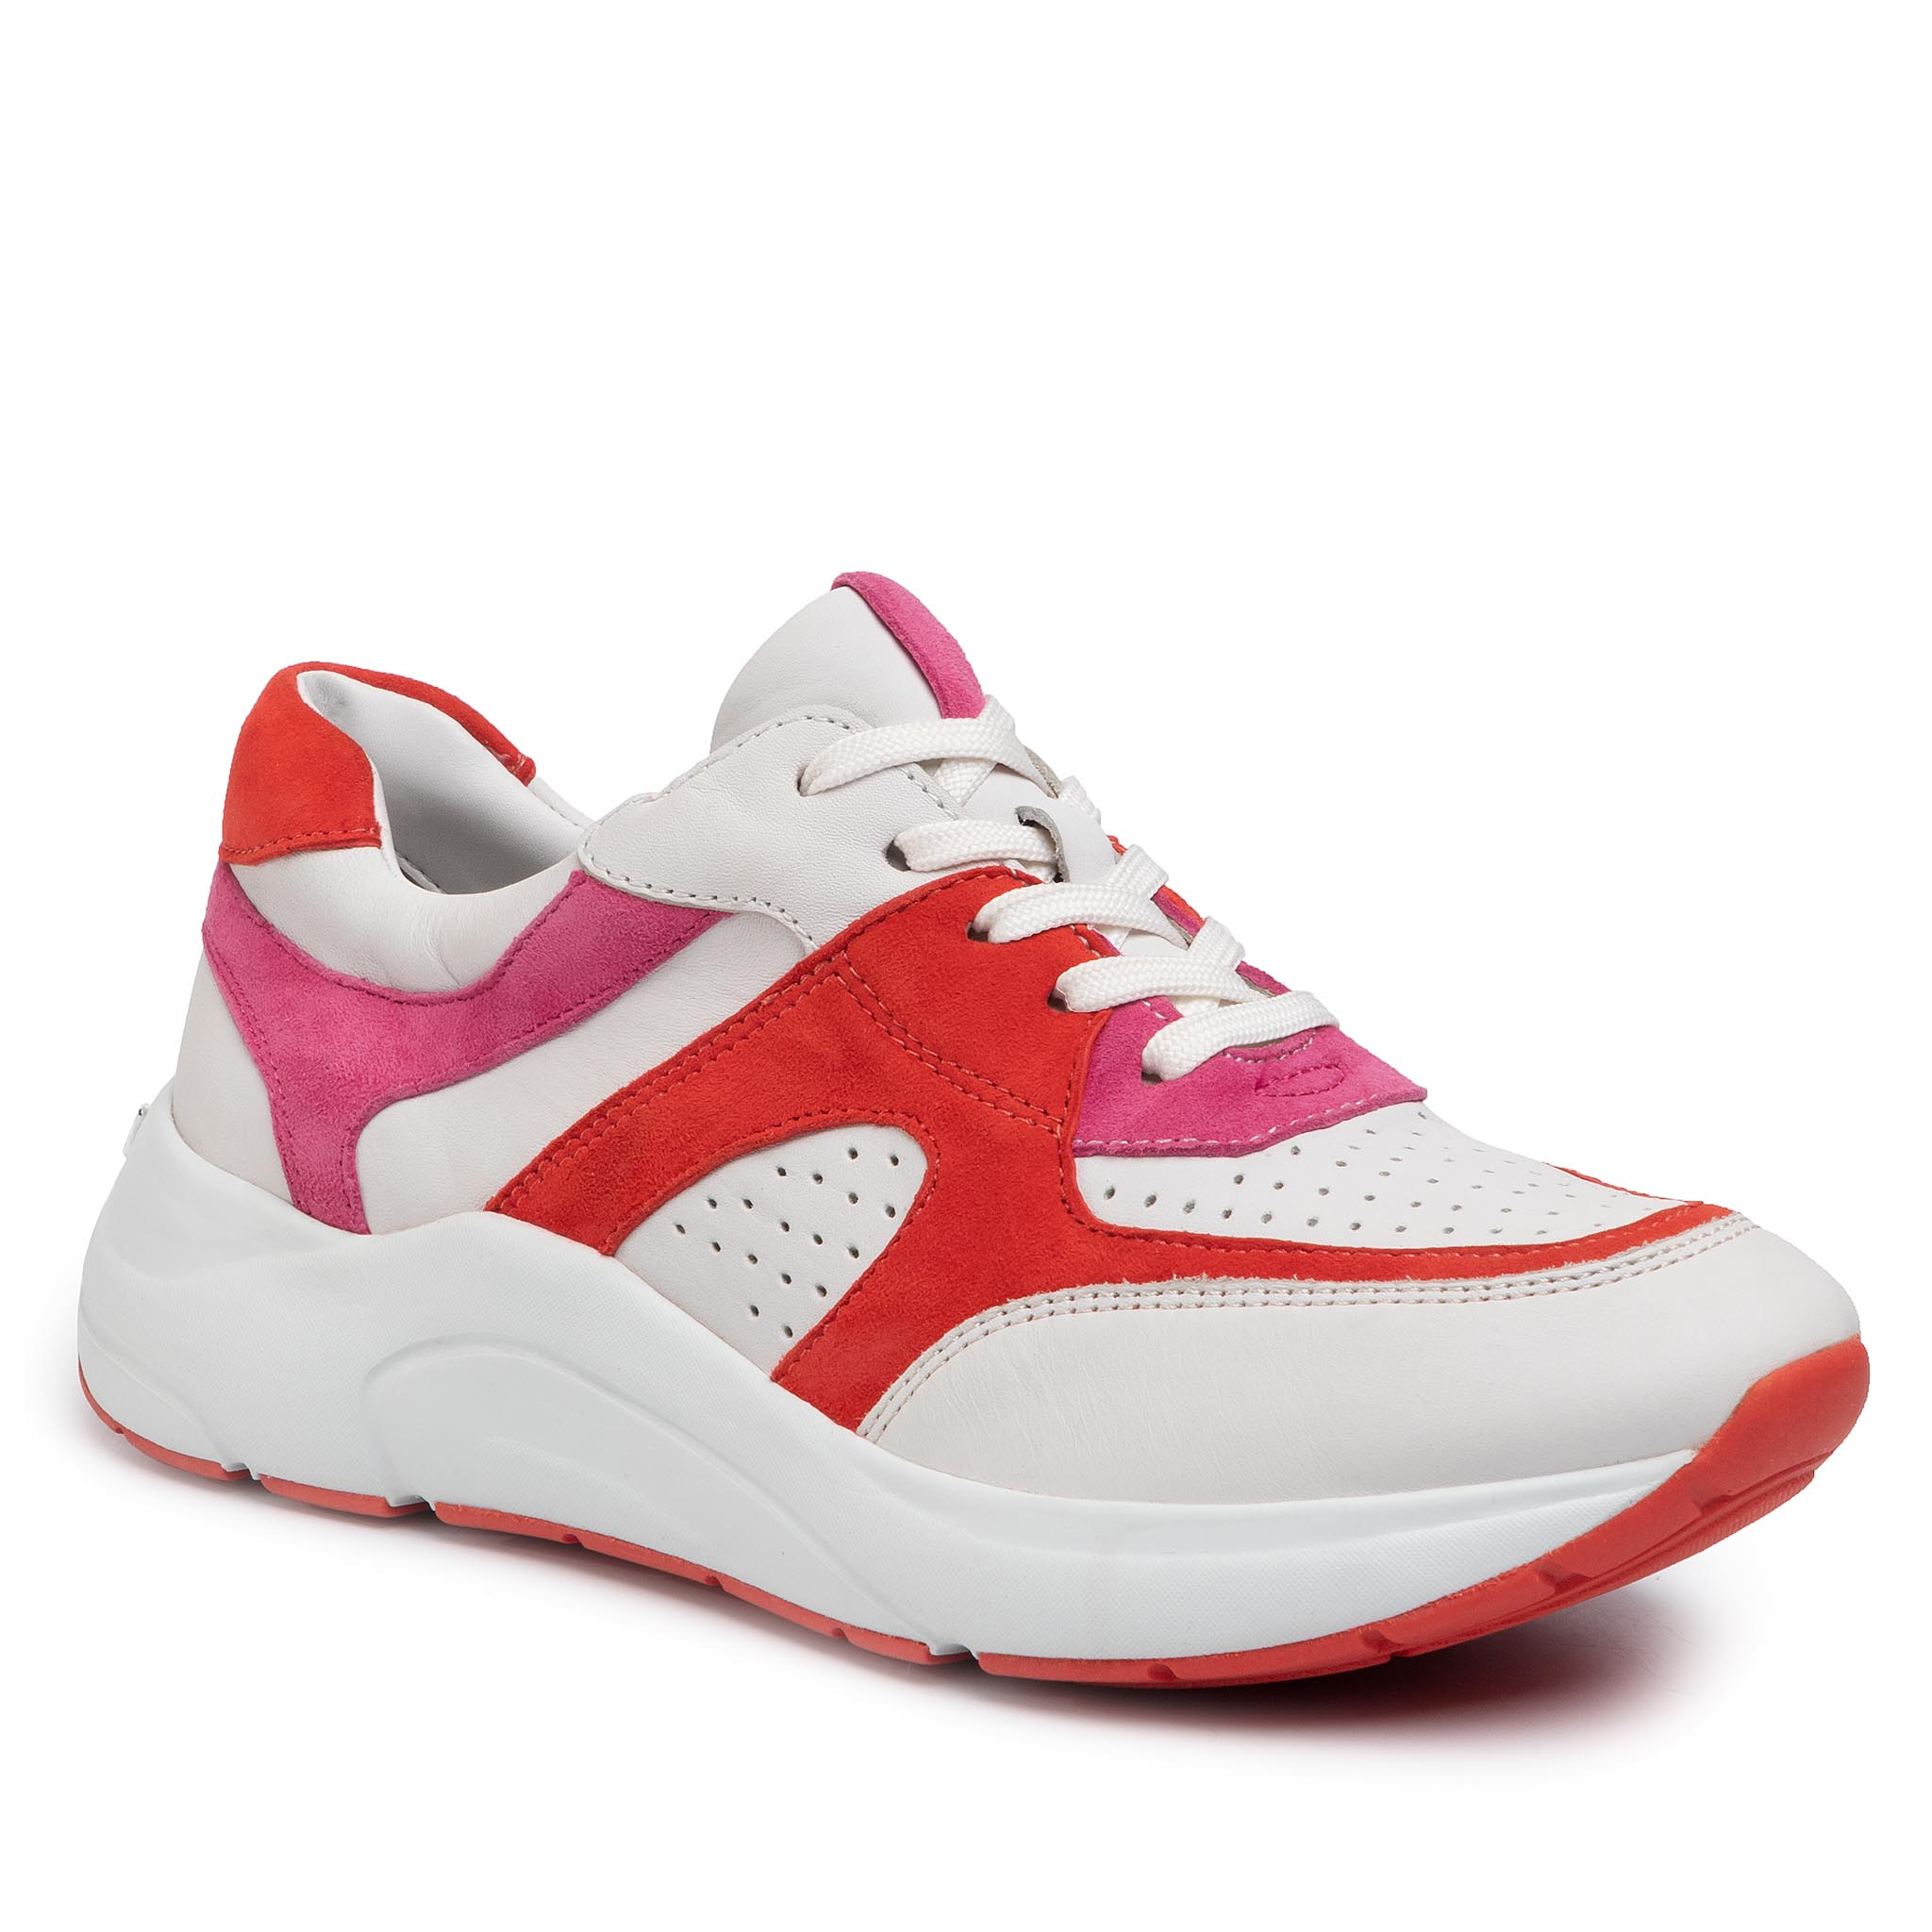 Sneakers CAPRICE - 9-23501-24 White/Coral 152